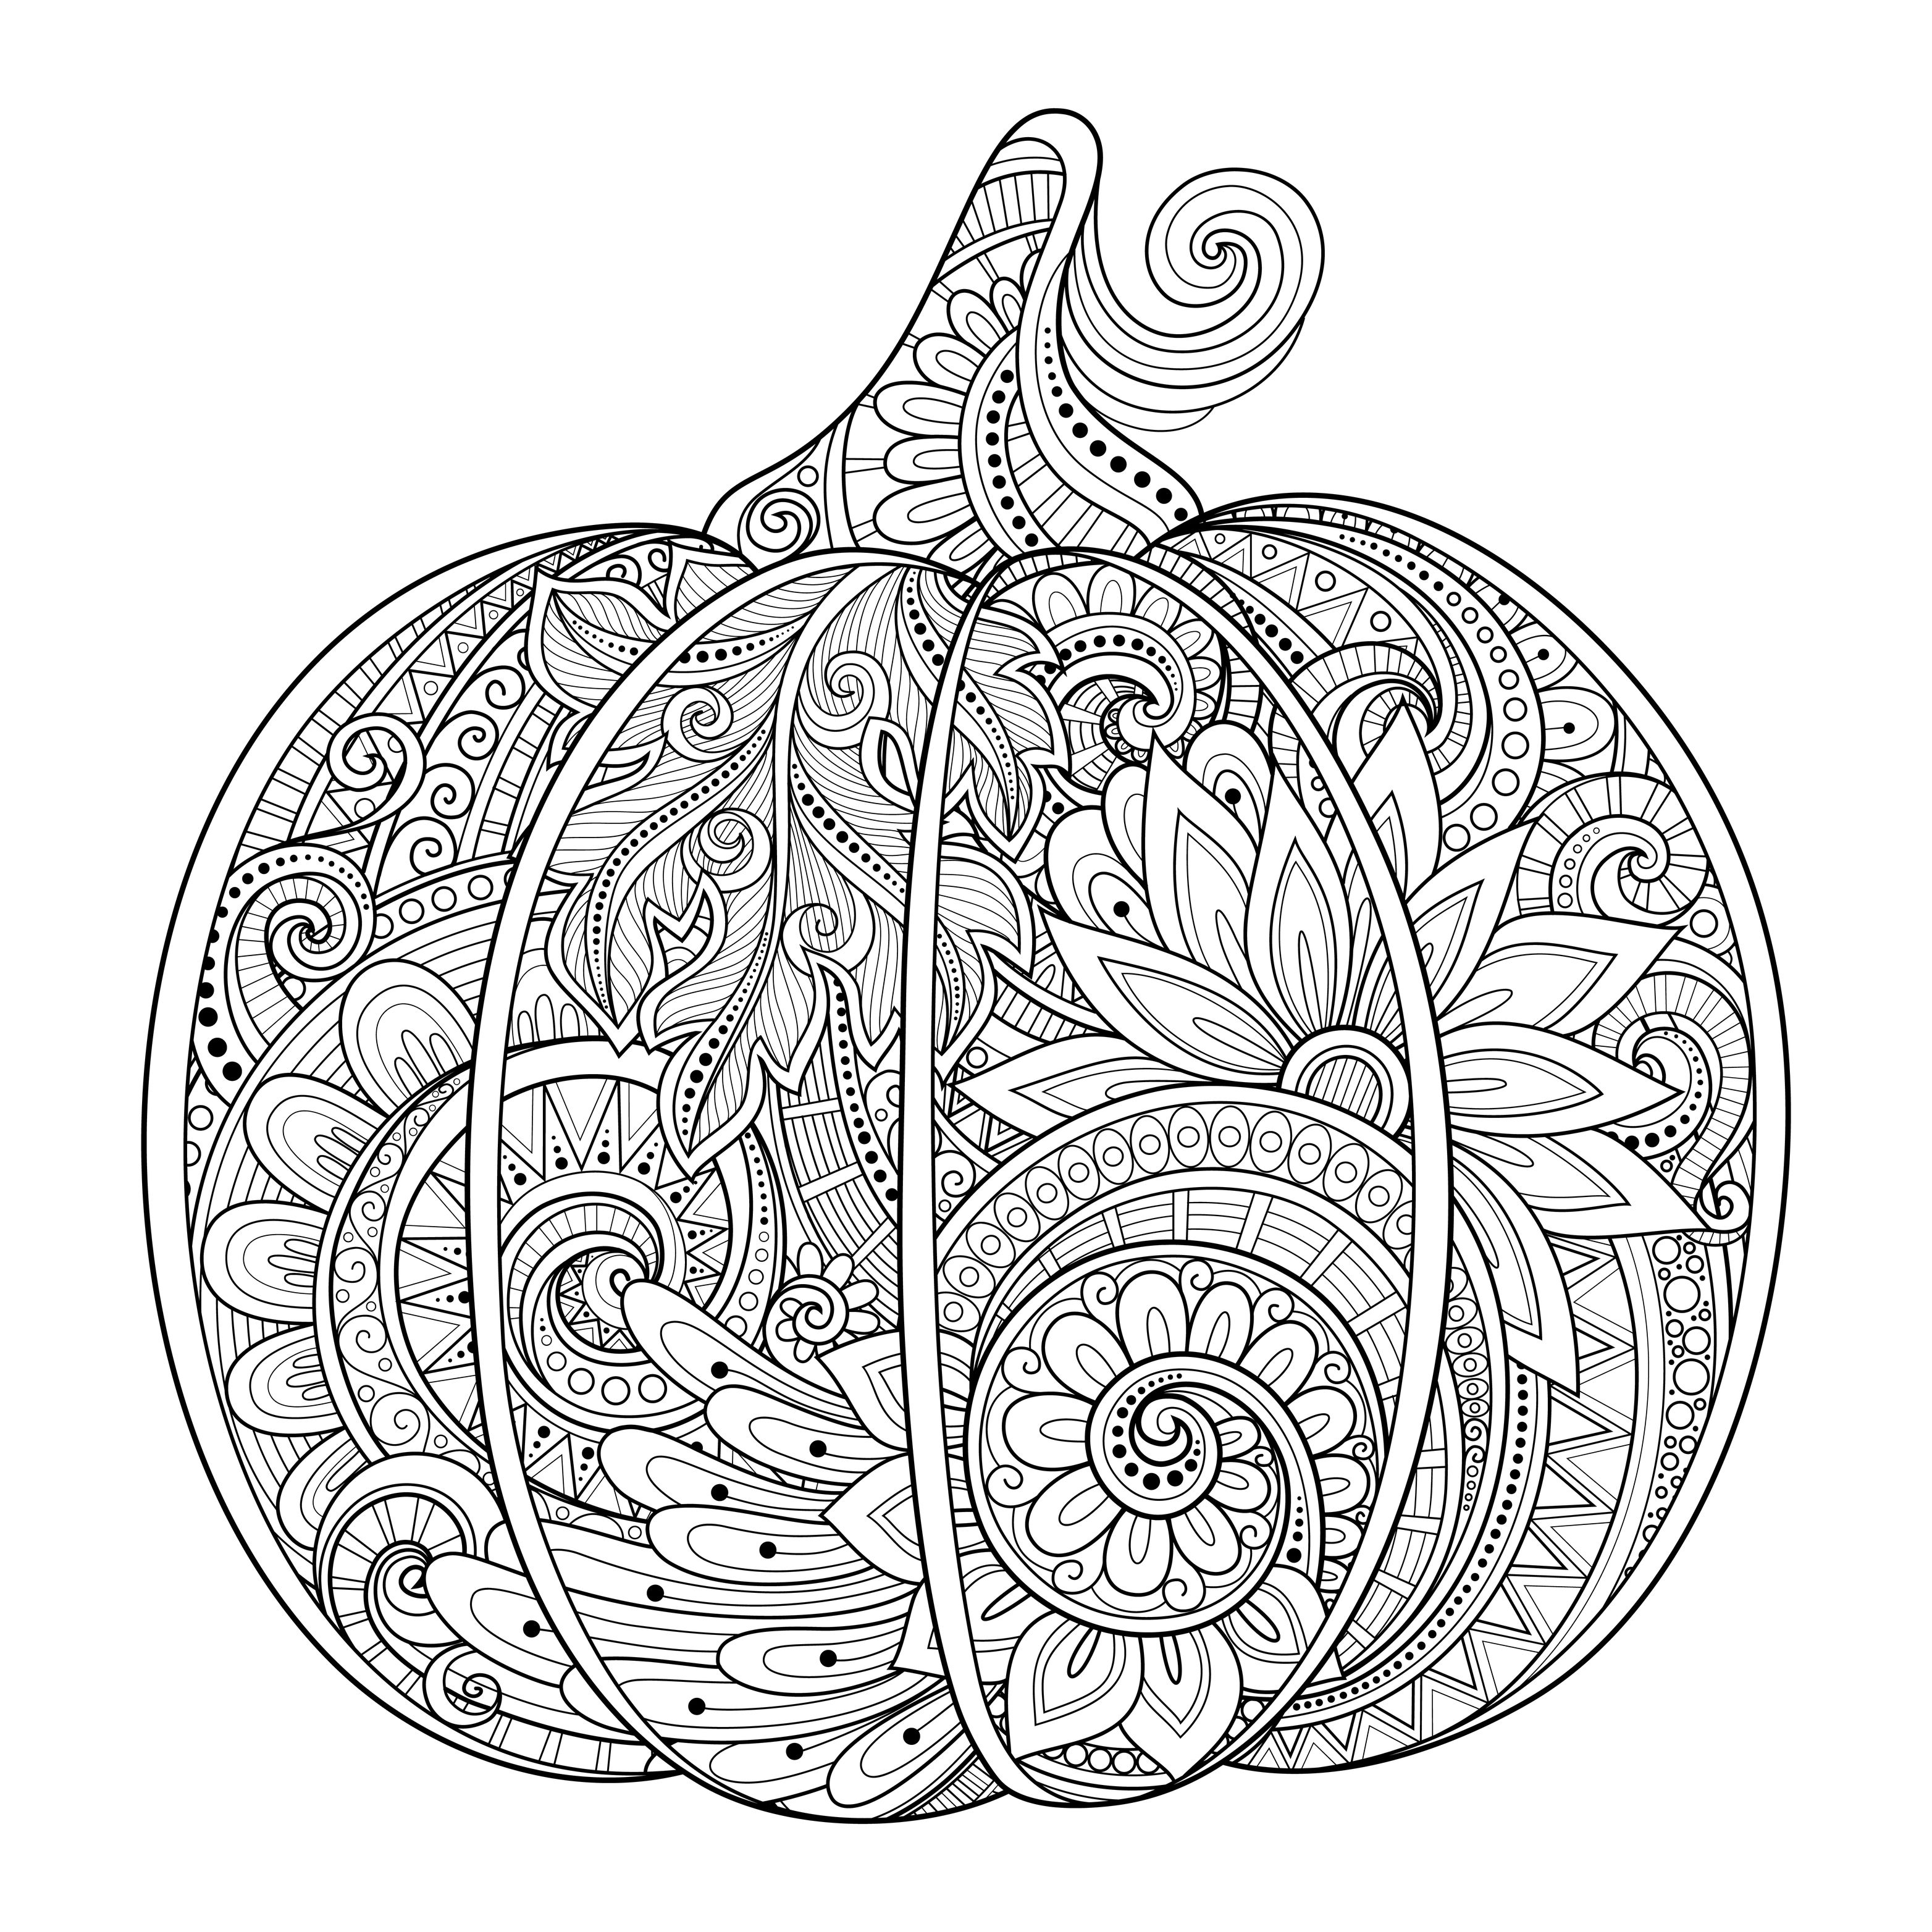 halloween pumpkin pictures to print and color halloween scary pumpkin halloween adult coloring pages halloween color print pictures and pumpkin to